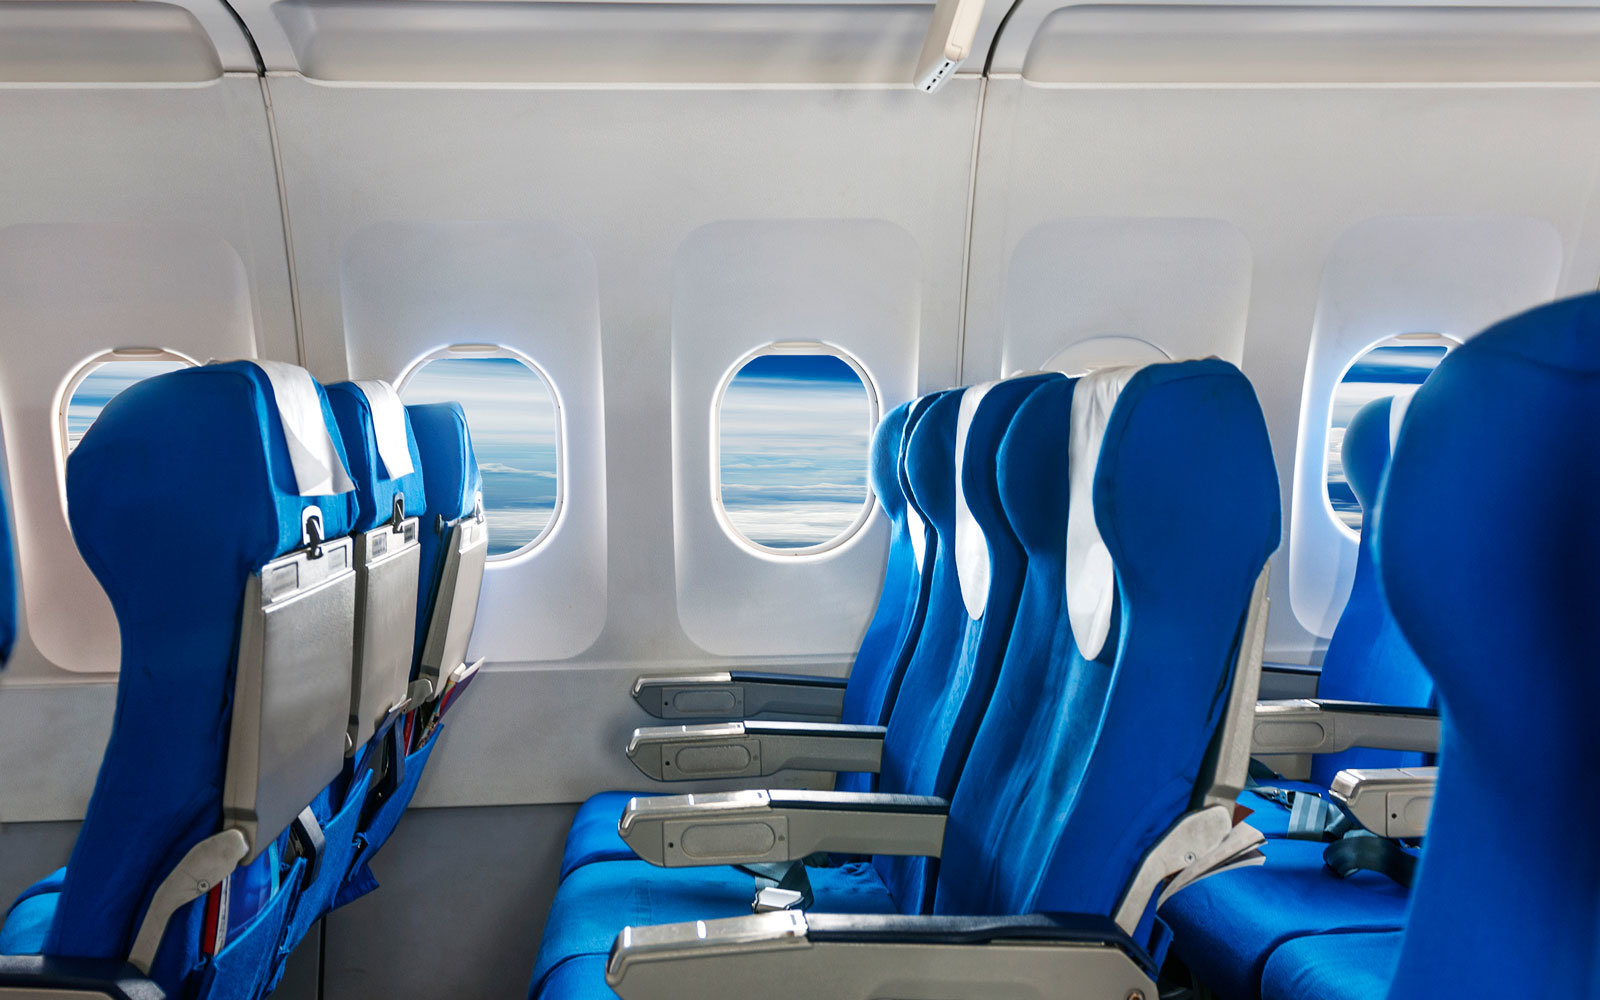 Picking This Seat on a Flight Means You're Selfish ...